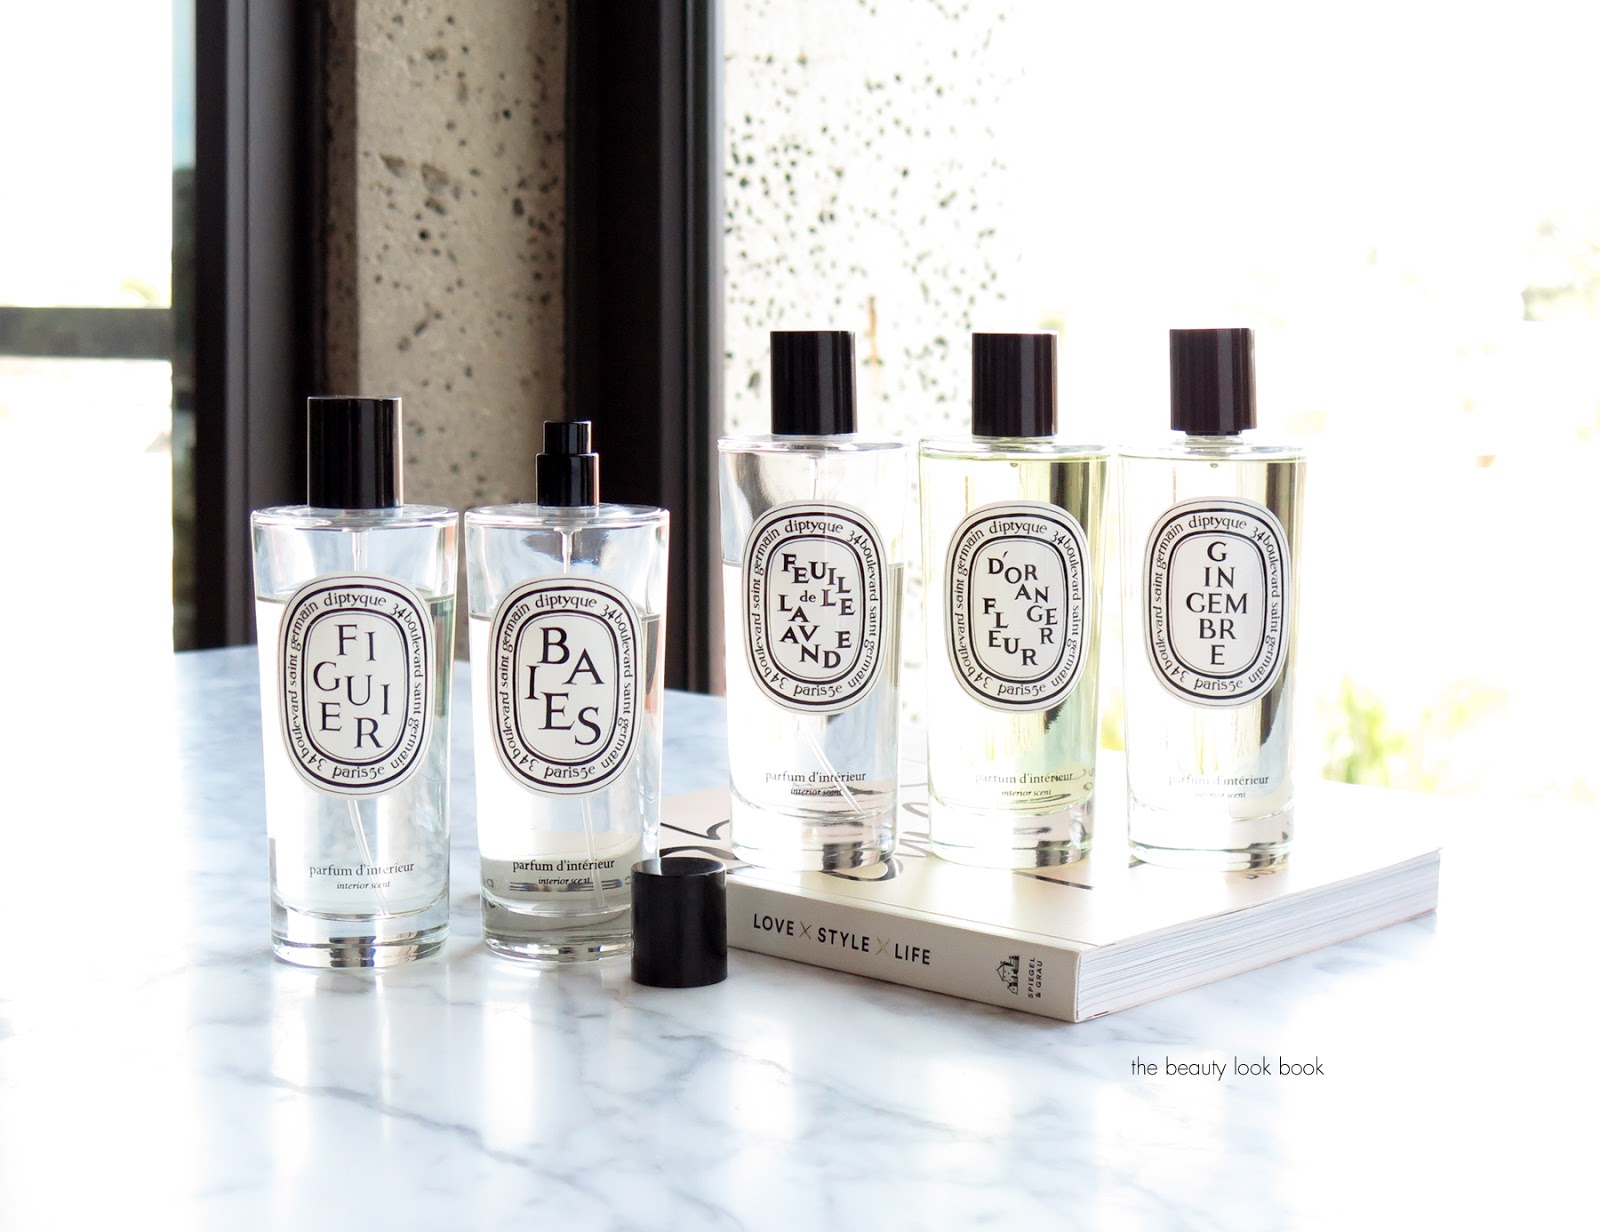 Diptyque Room Sprays Fleur D'Oranger and Gingembre | The ...